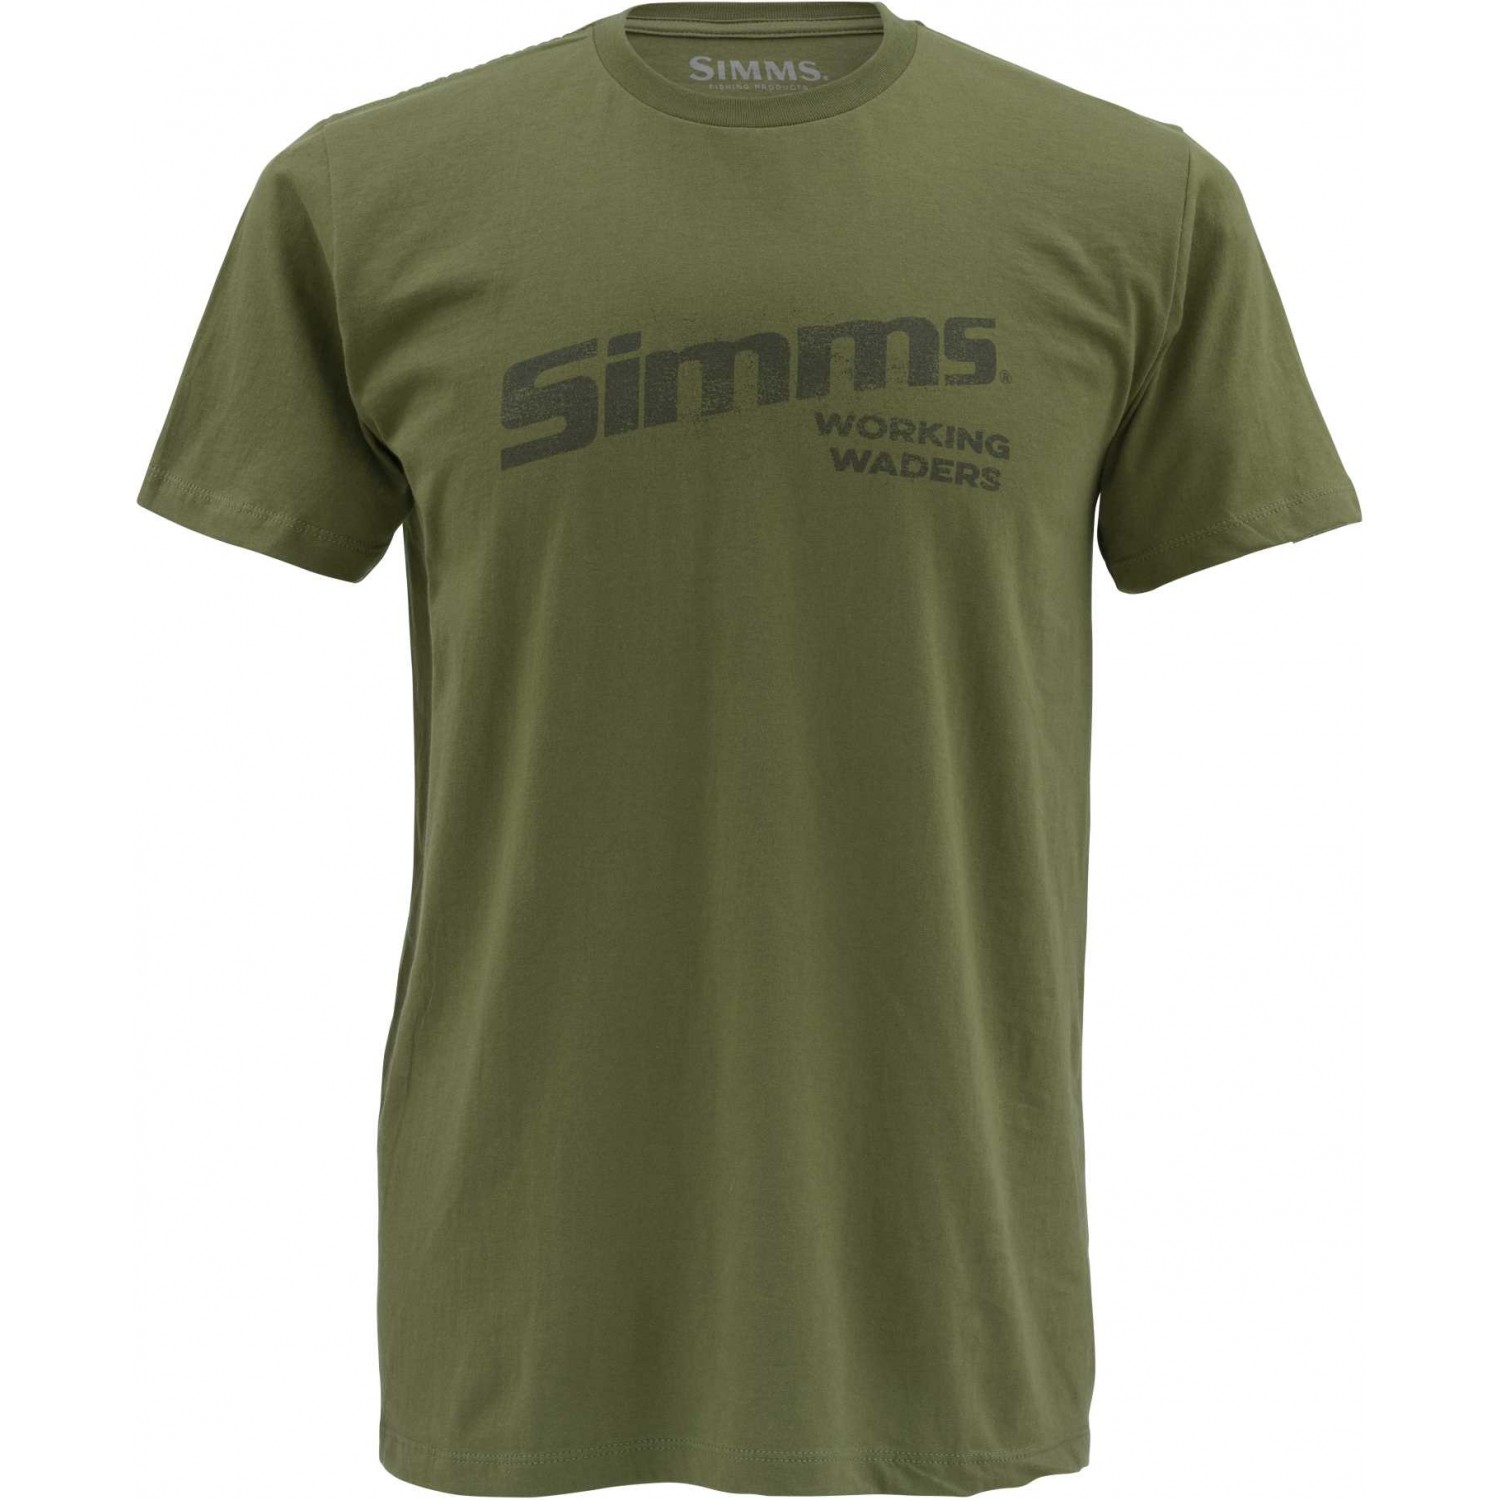 Simms Working Waders Olive